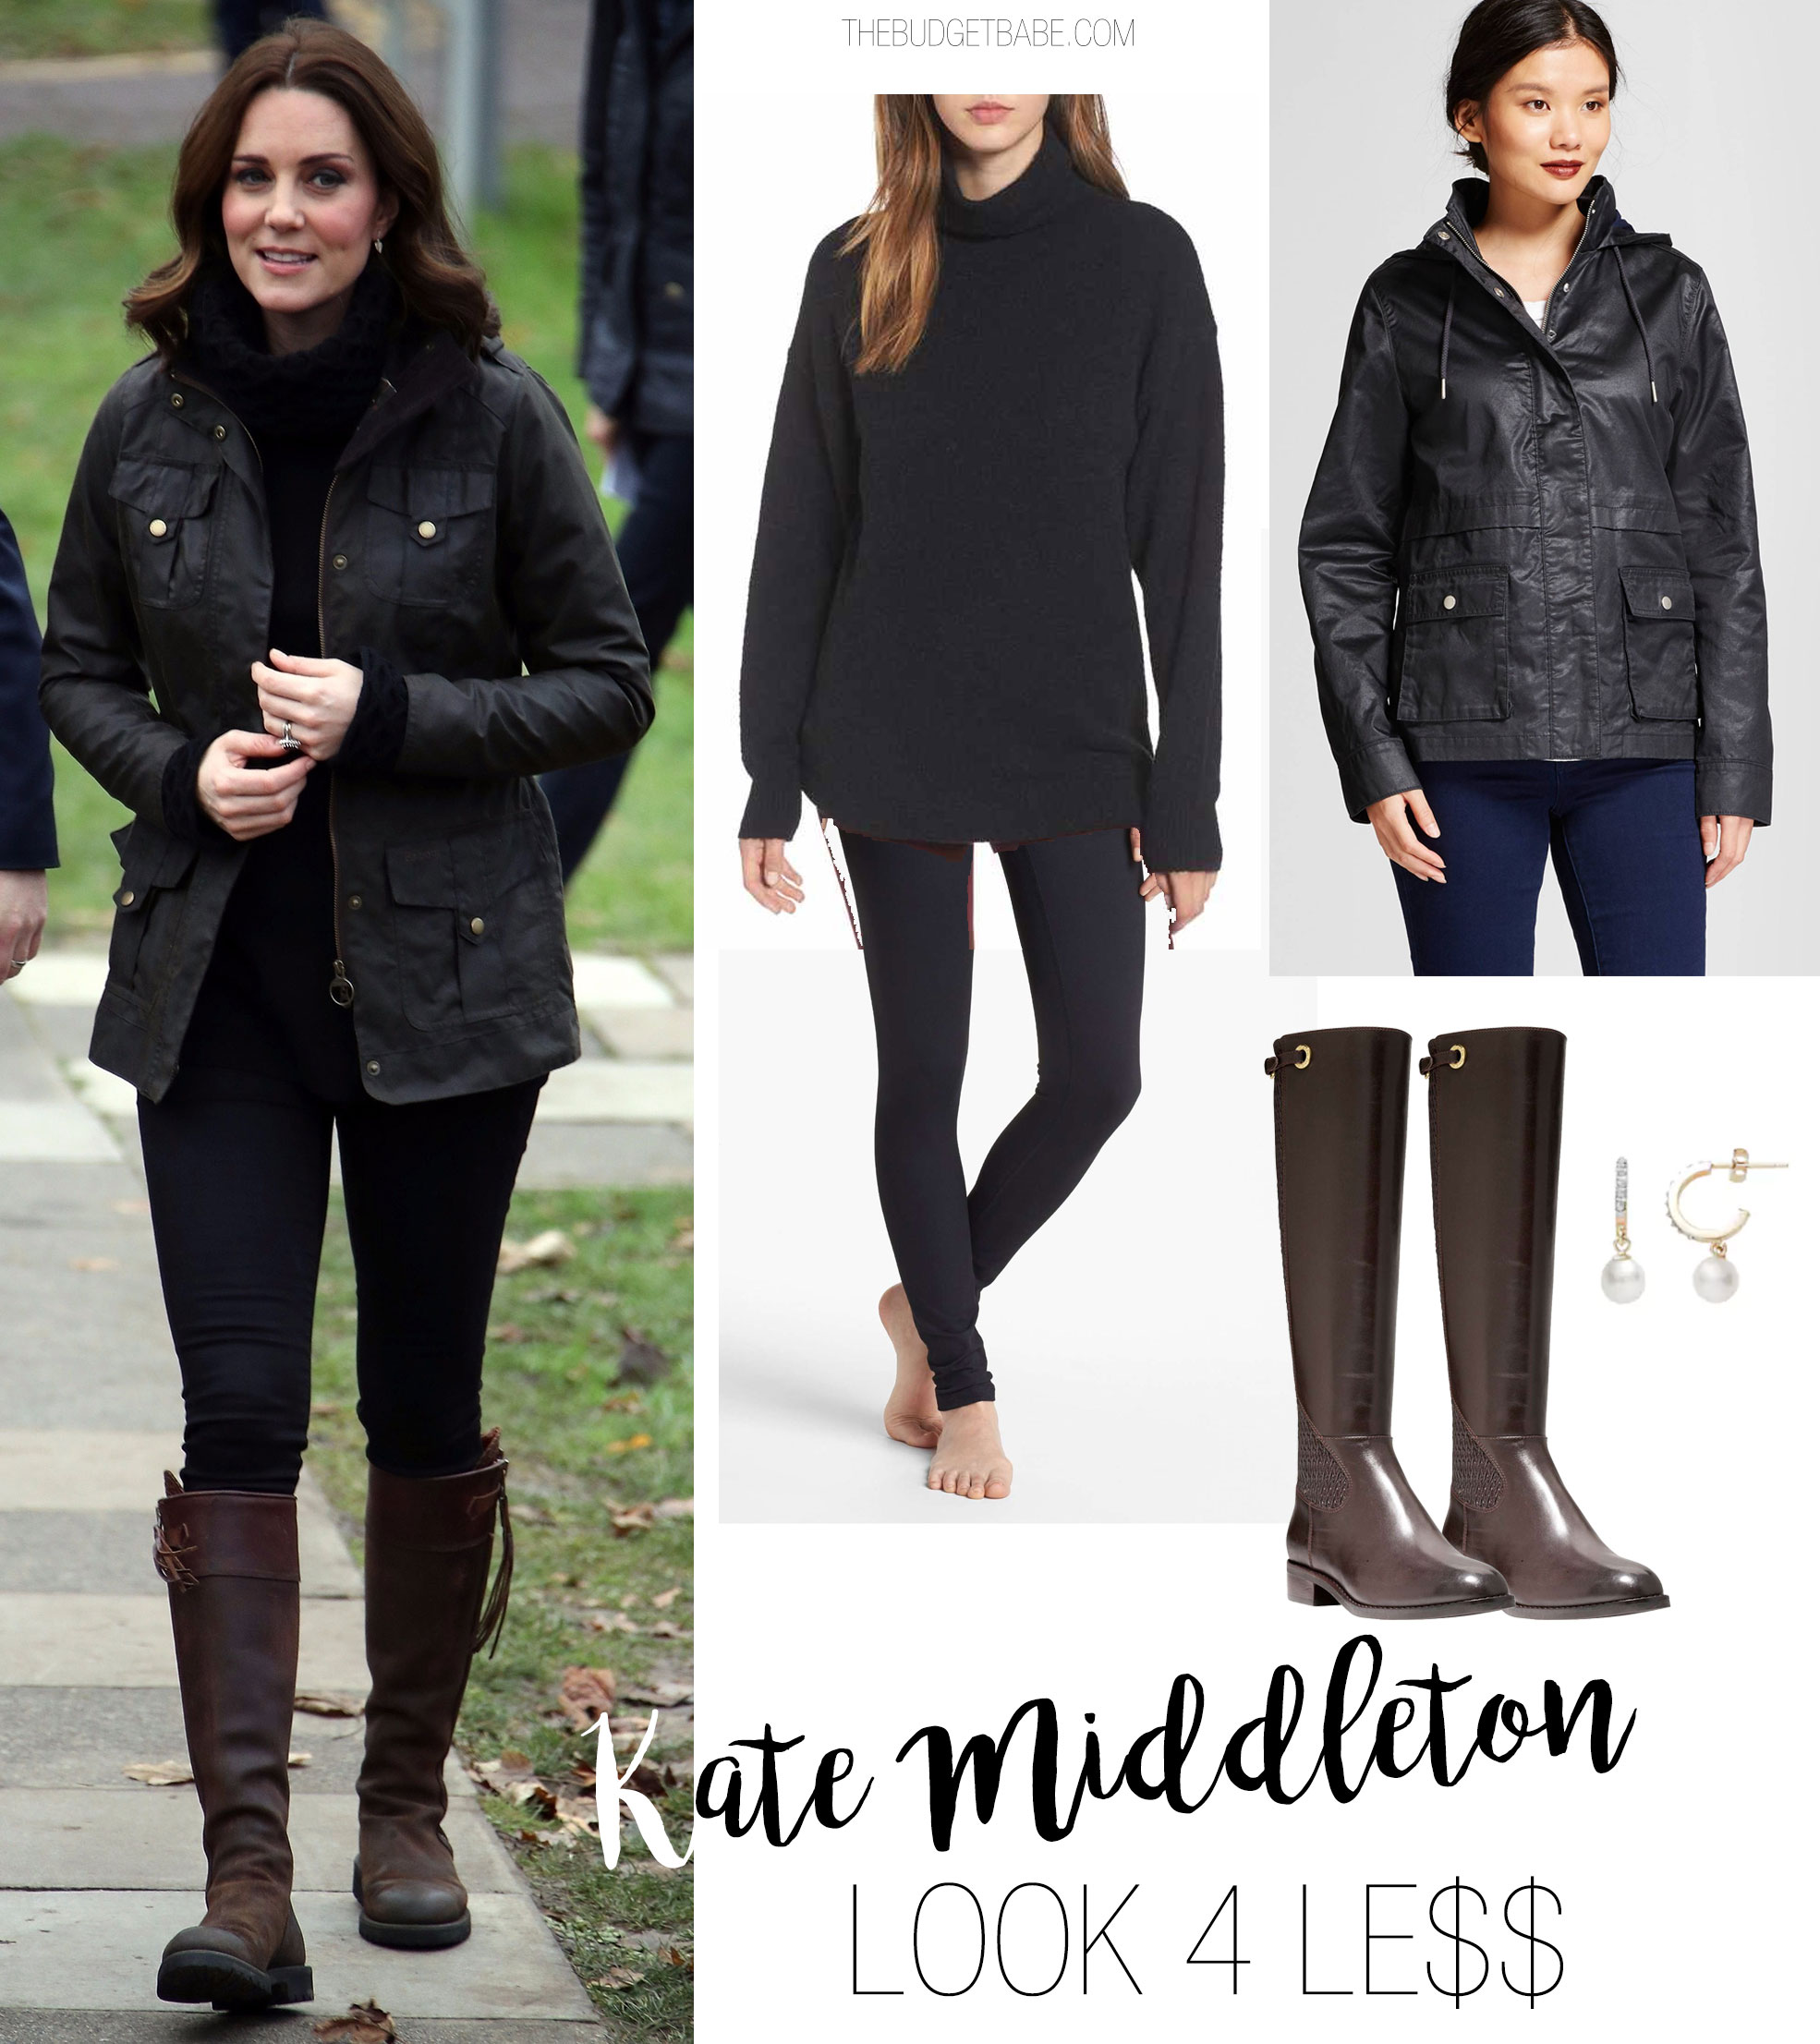 Kate Middleton's field jacket and riding boots look for less